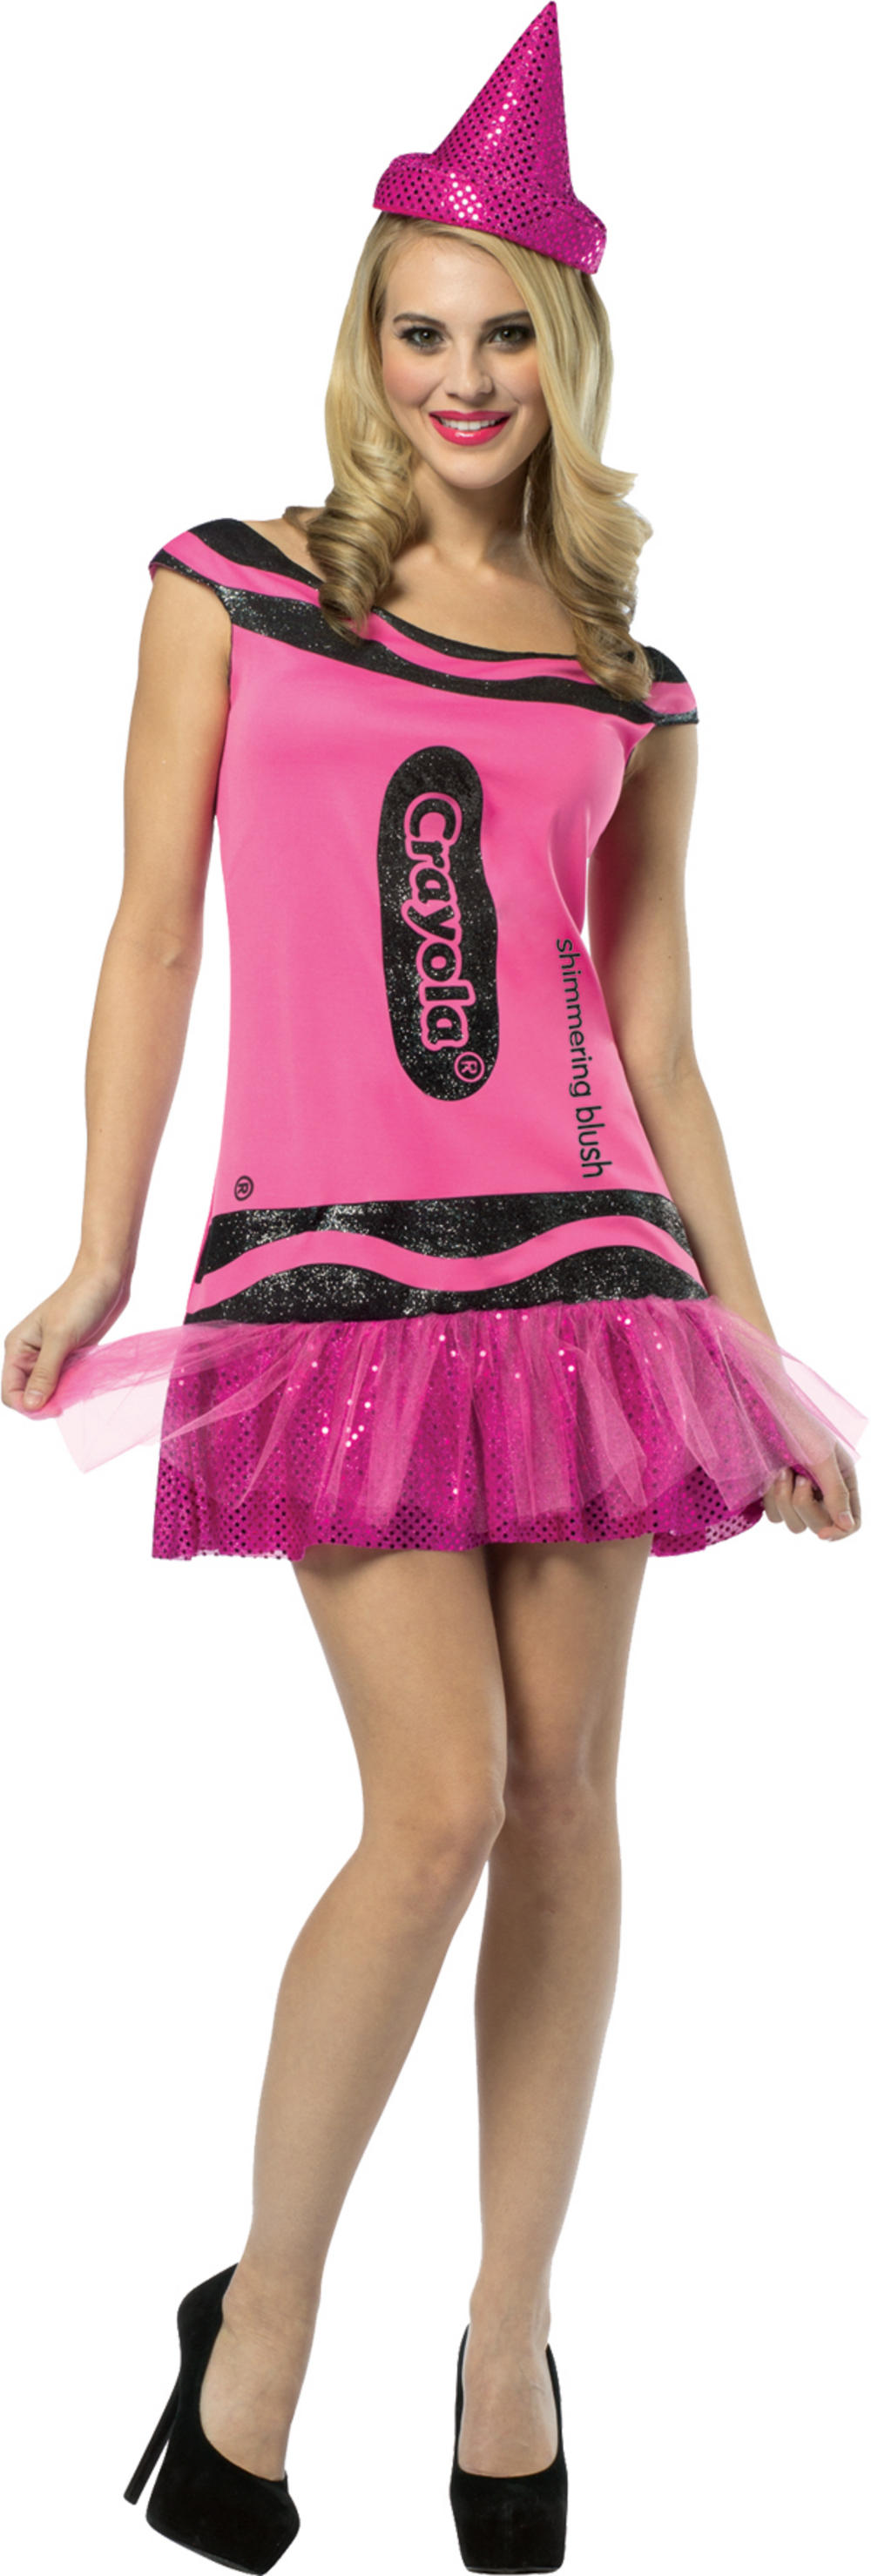 Blush Pink Crayola Glitter Dress Ladies Costume